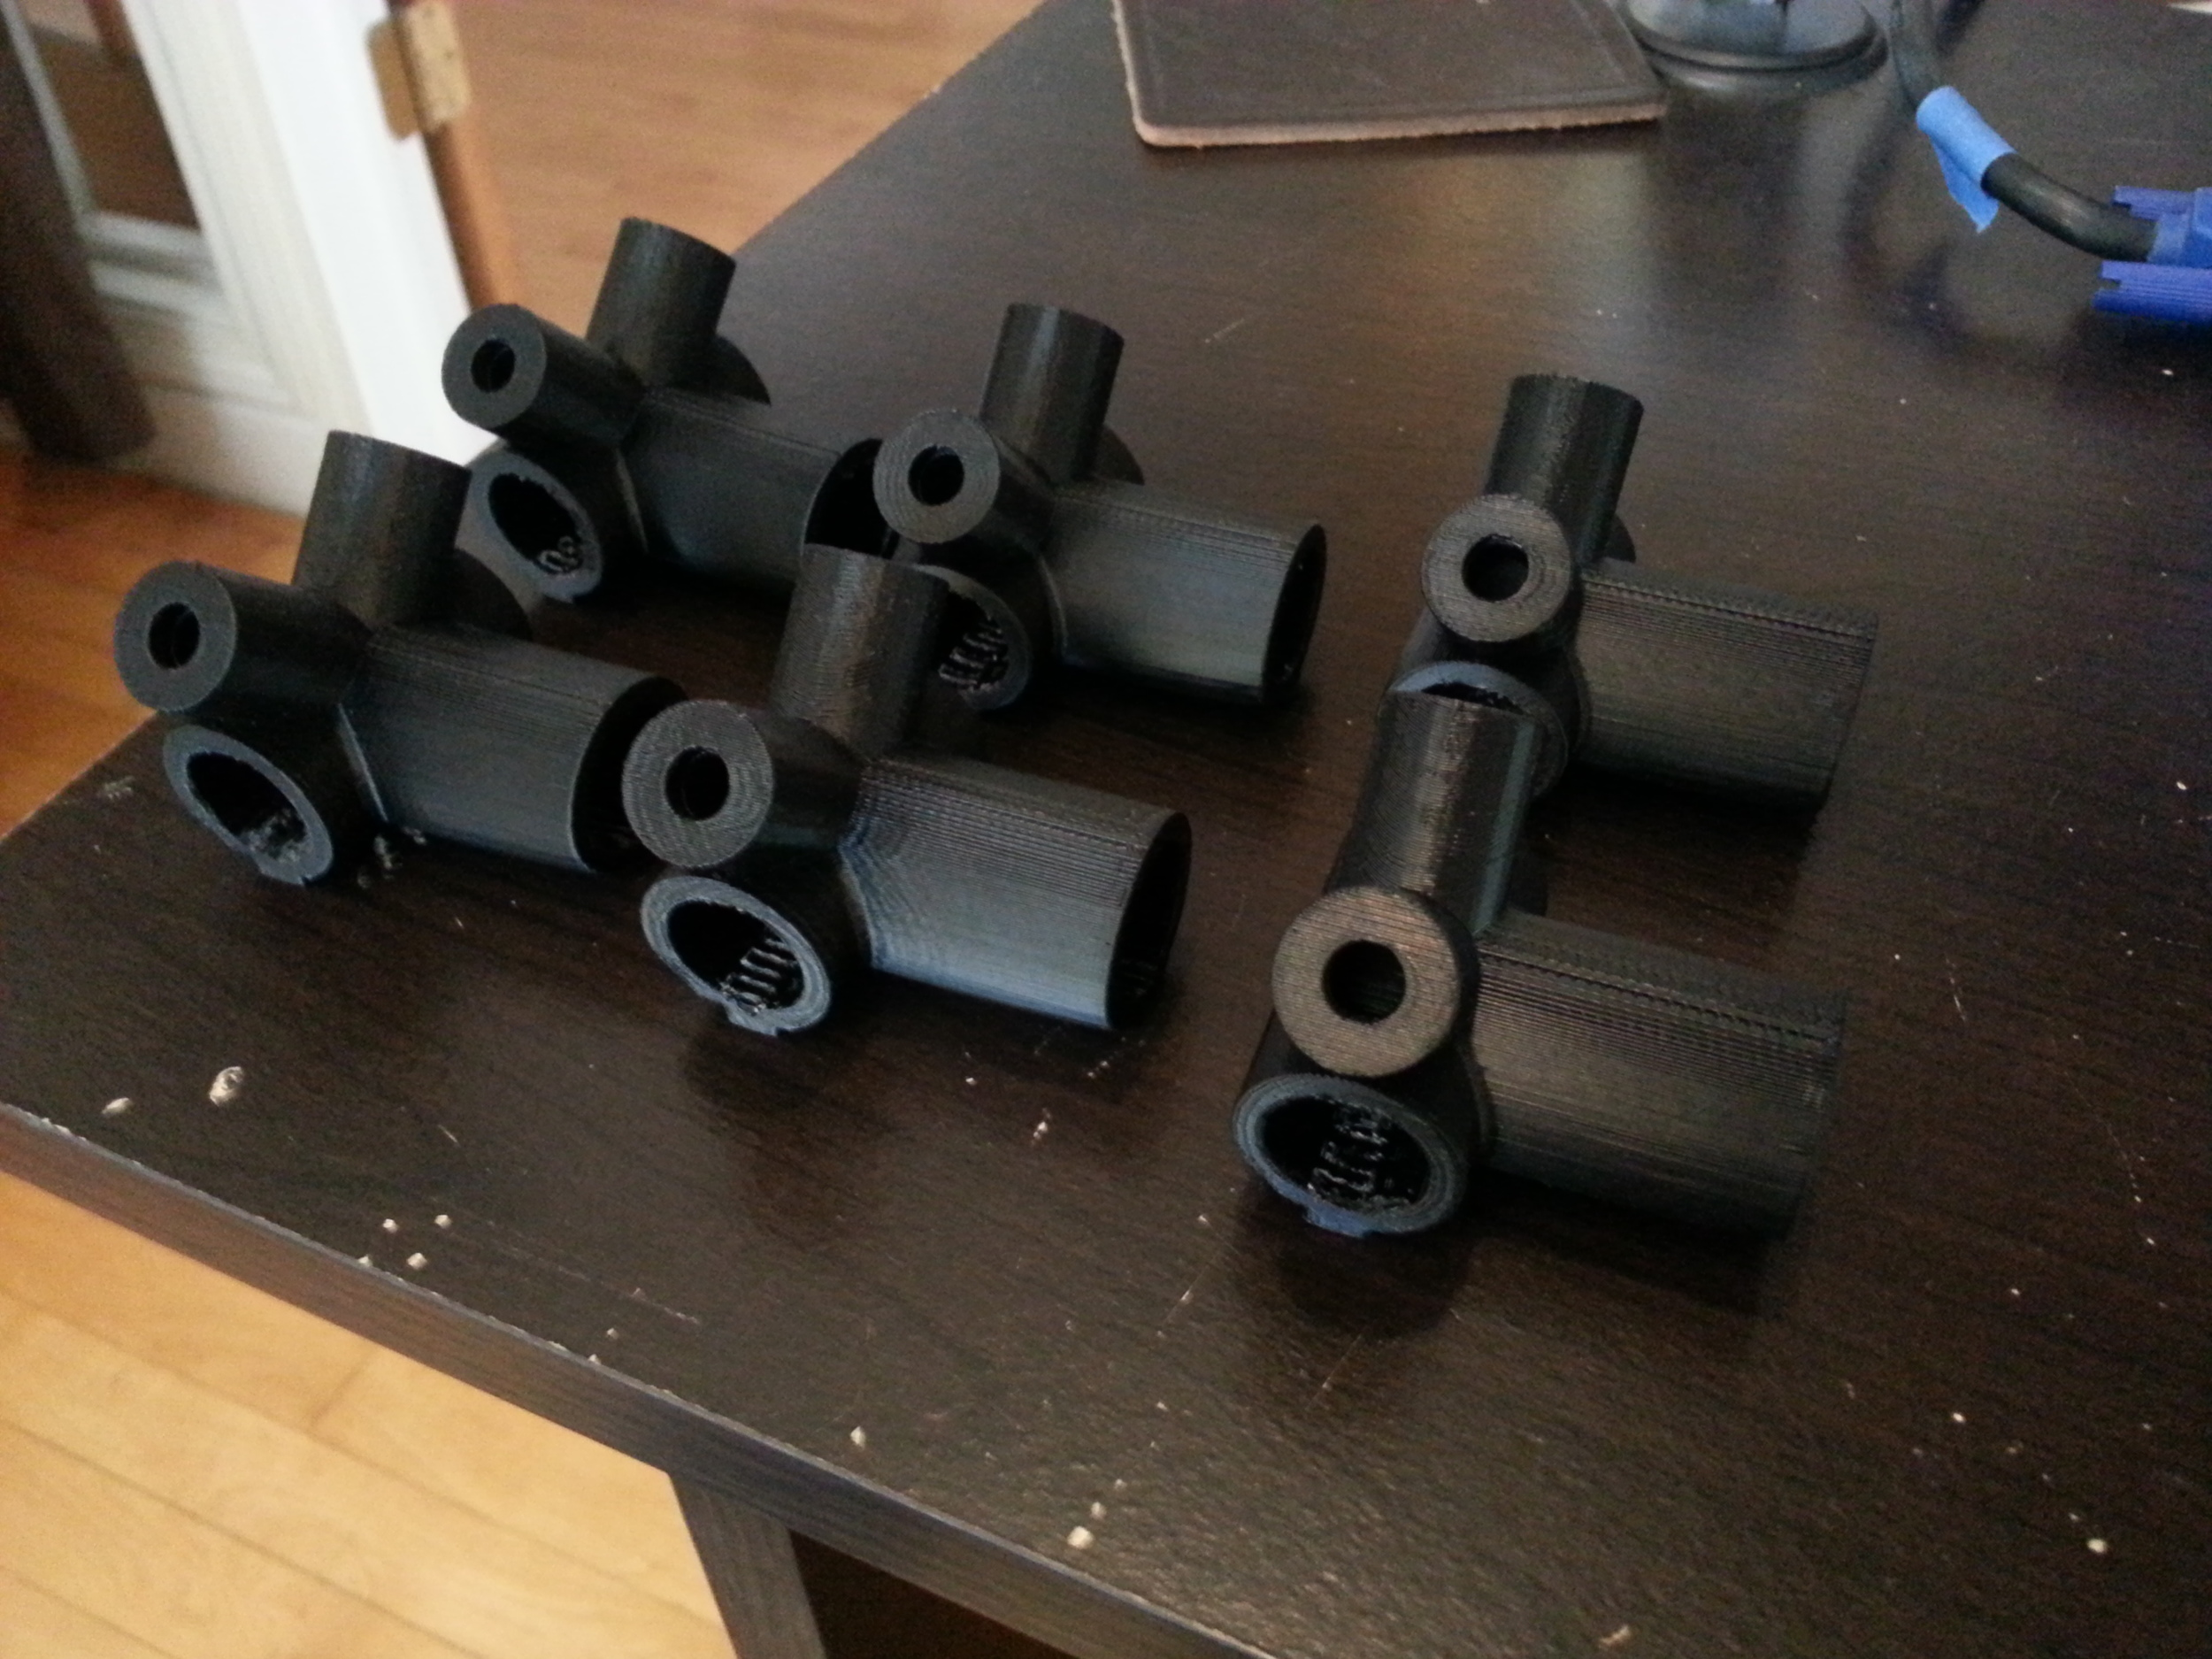 4 Black ABS and 2 Black PLA T-Brackets